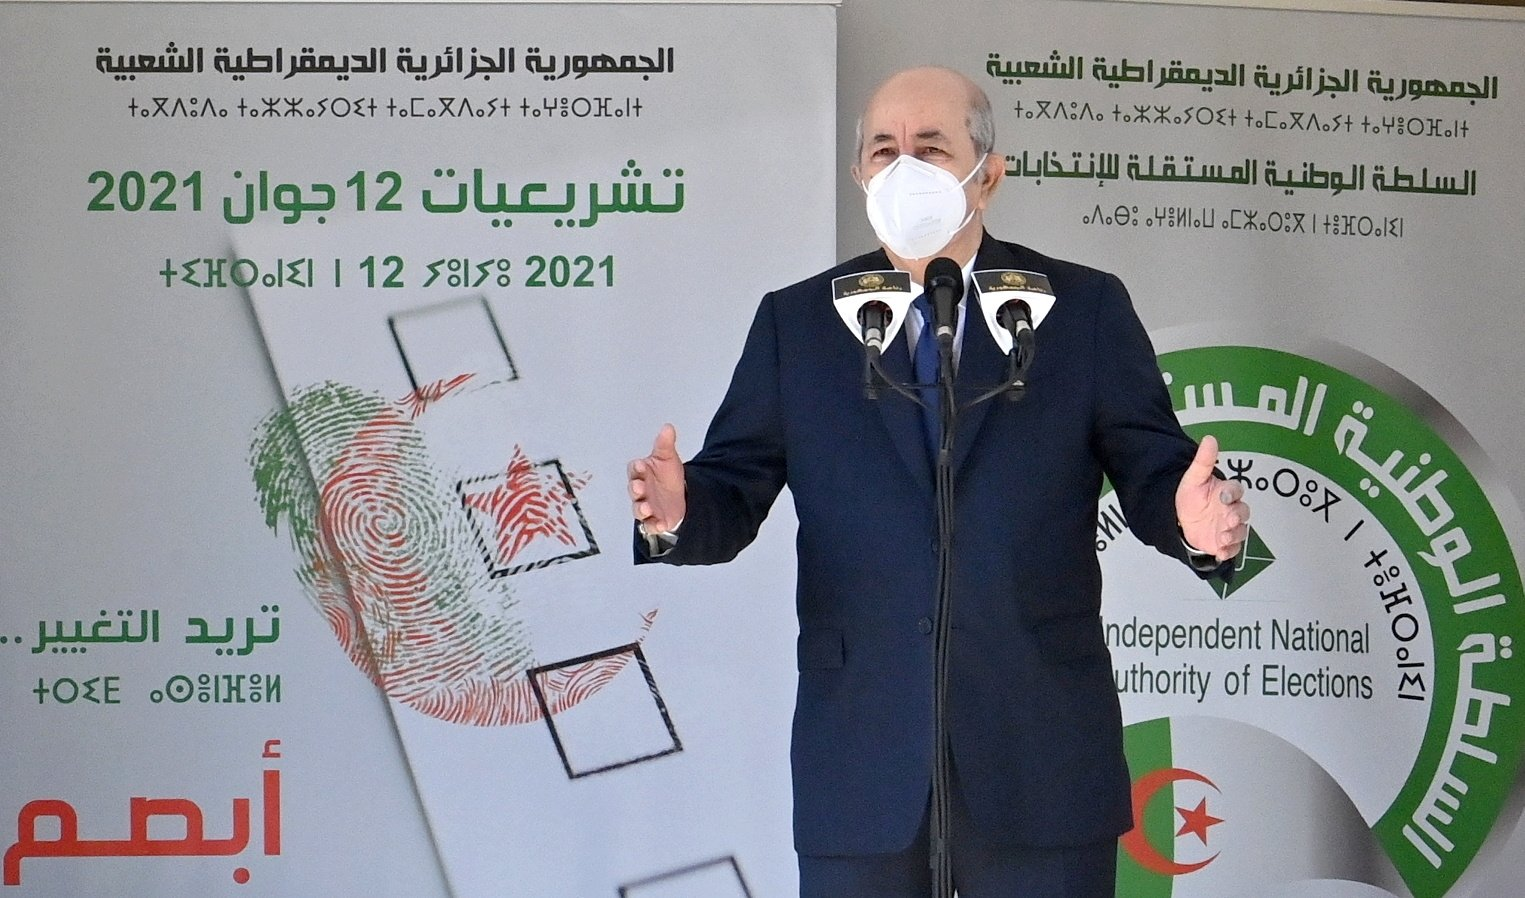 Algeria's President Abdelmadjid Tebboune speaks outside a polling station during the country's parliamentary election, Bouchaoui, Algeria, June 12, 2021. (Reuters Photo)